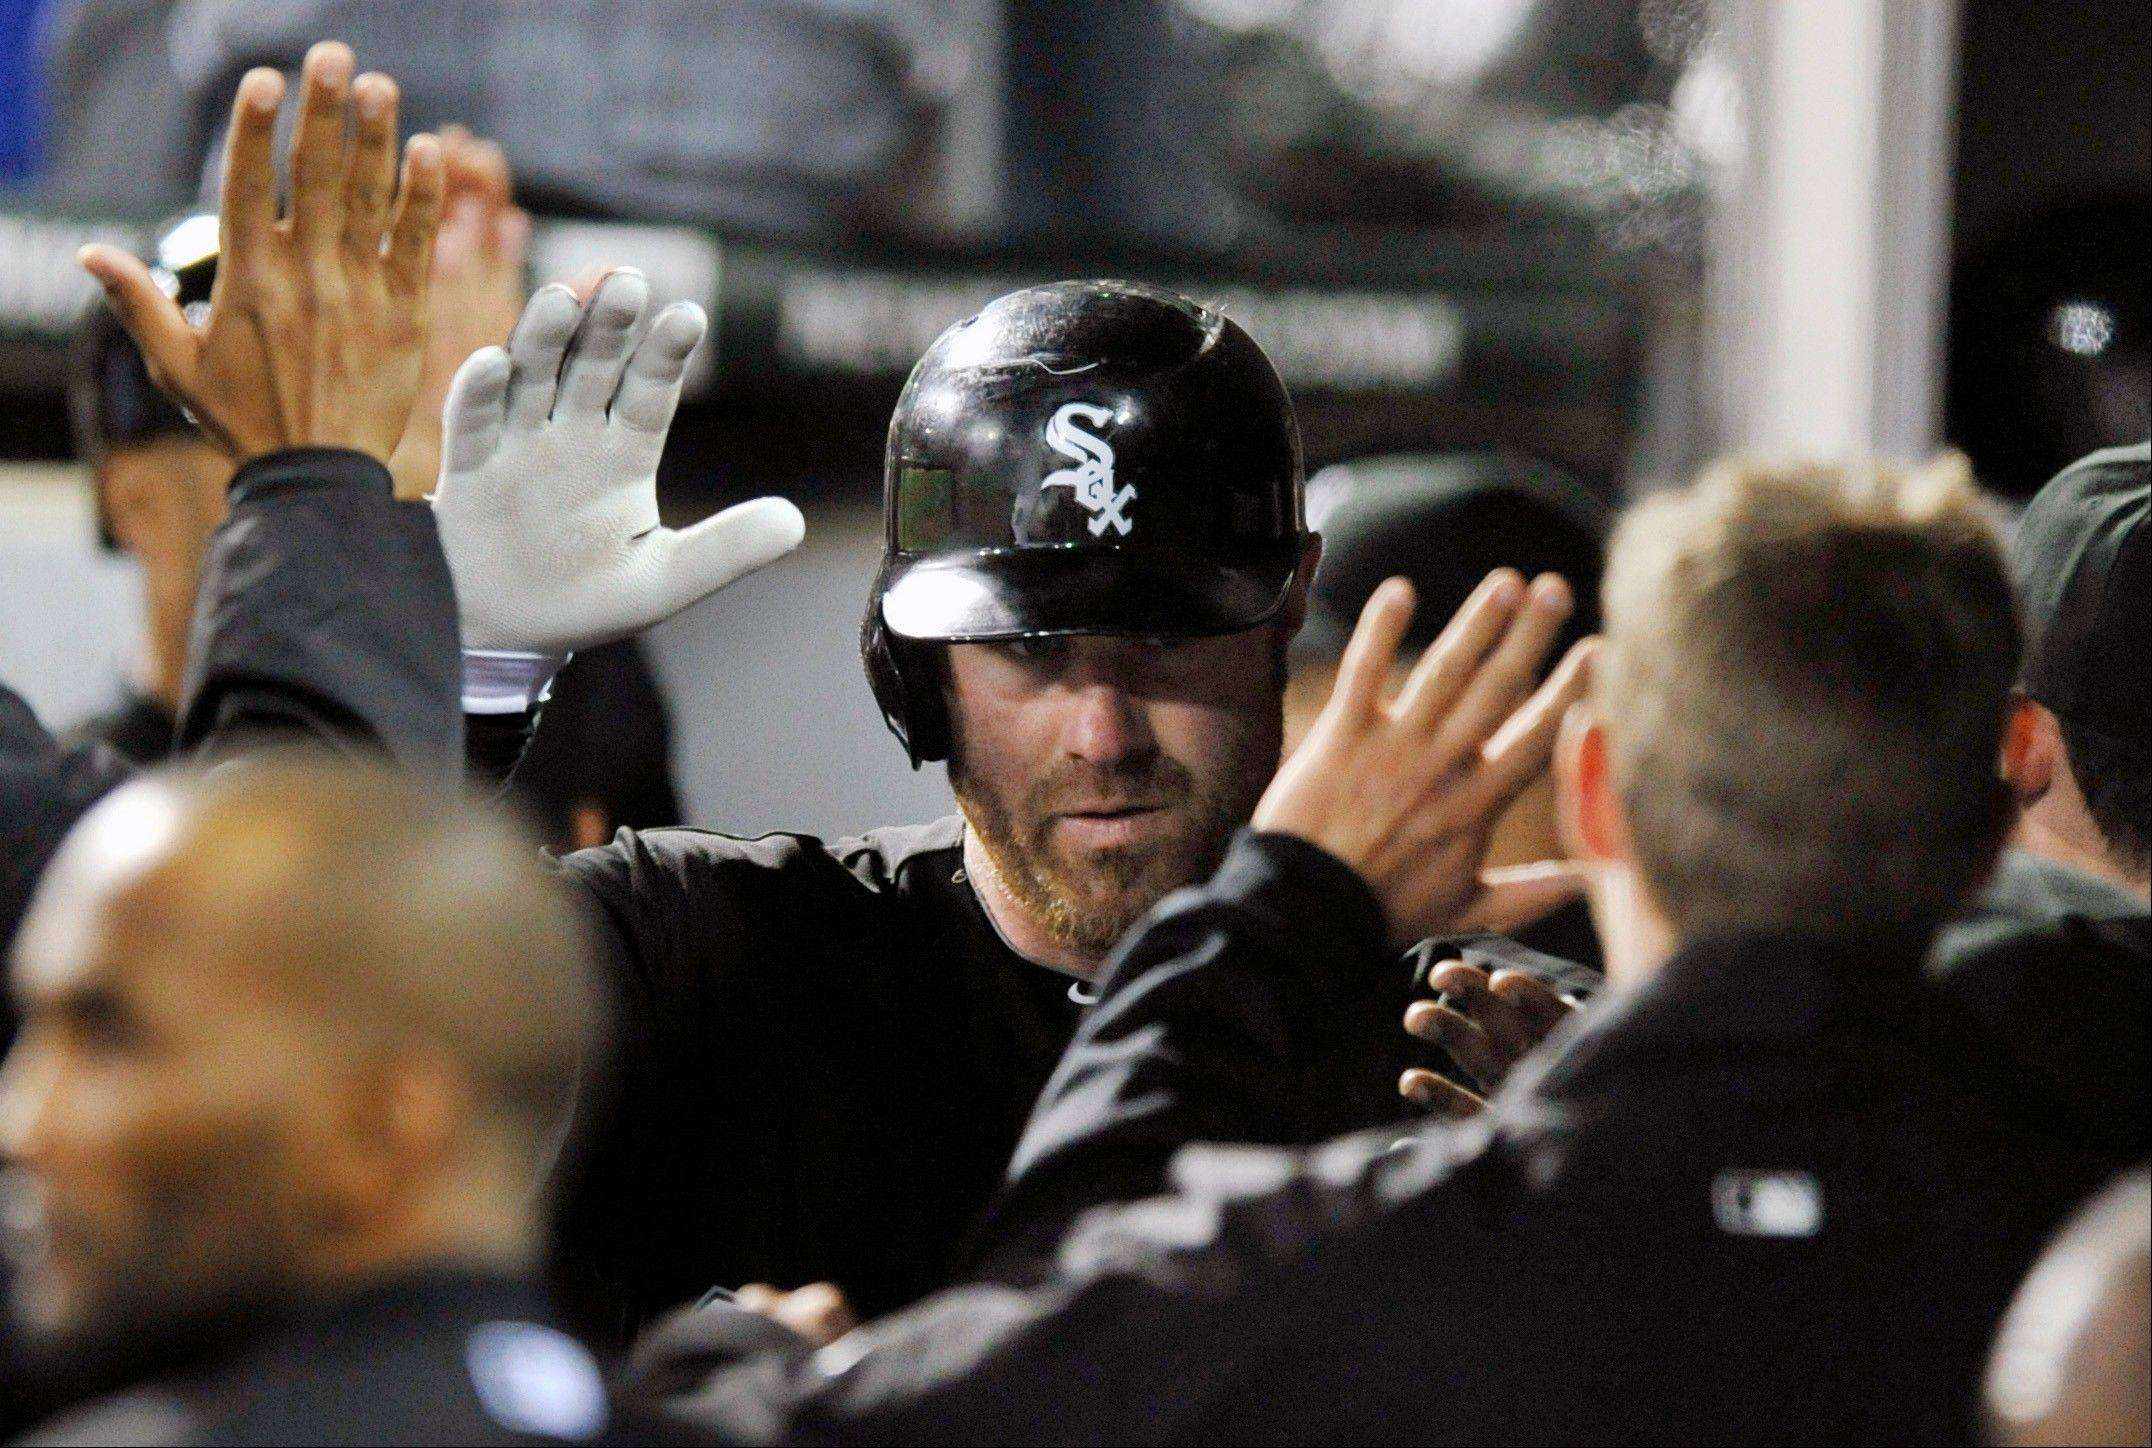 Sox show 'will to win' against Rays